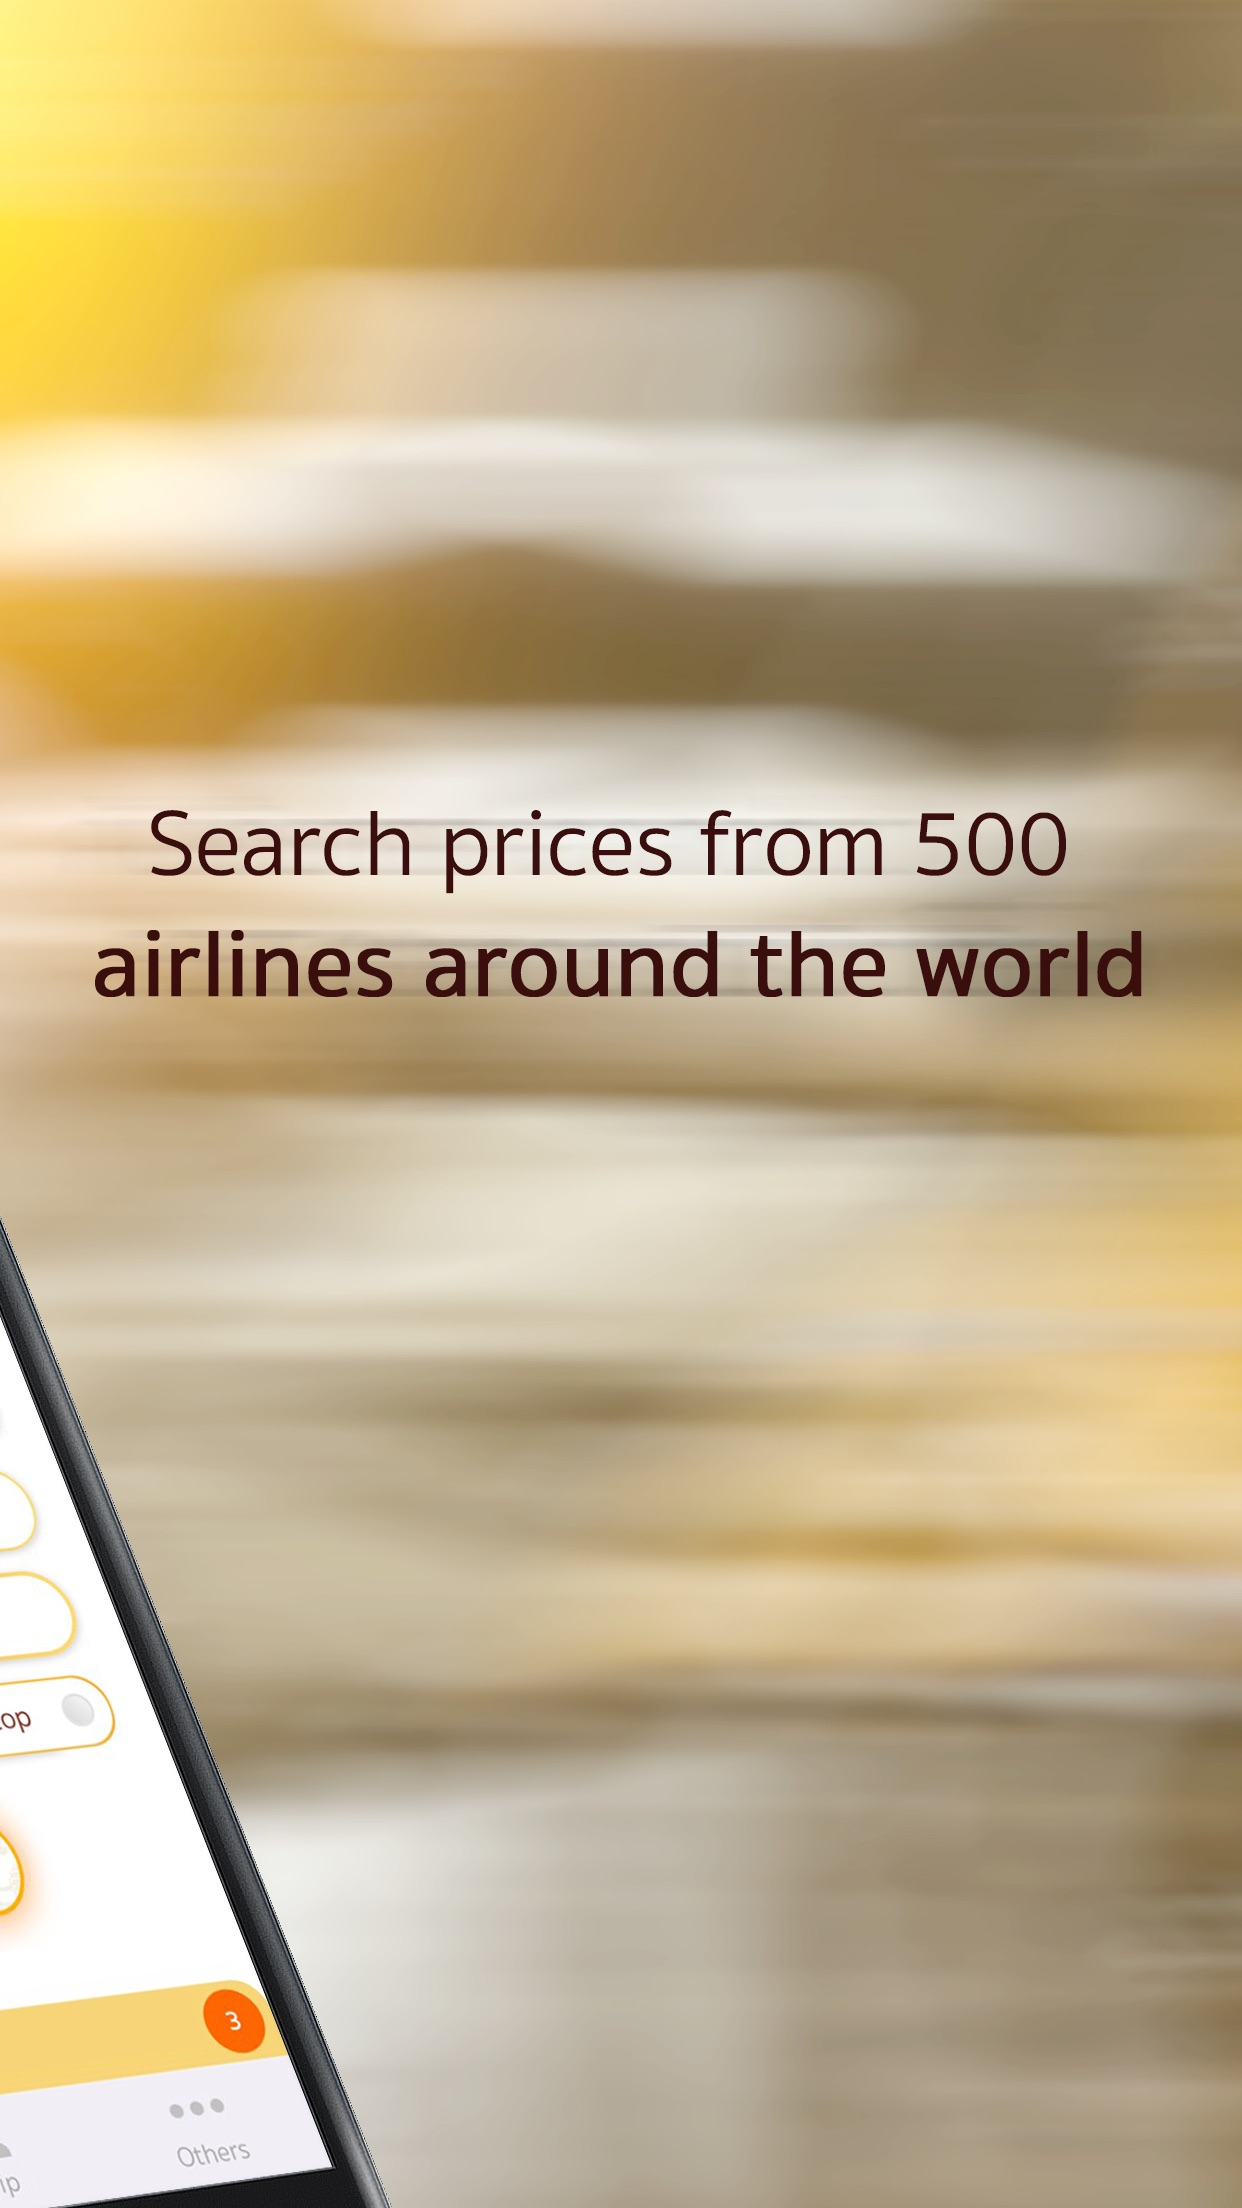 penguinT - airfare promotion Screenshot